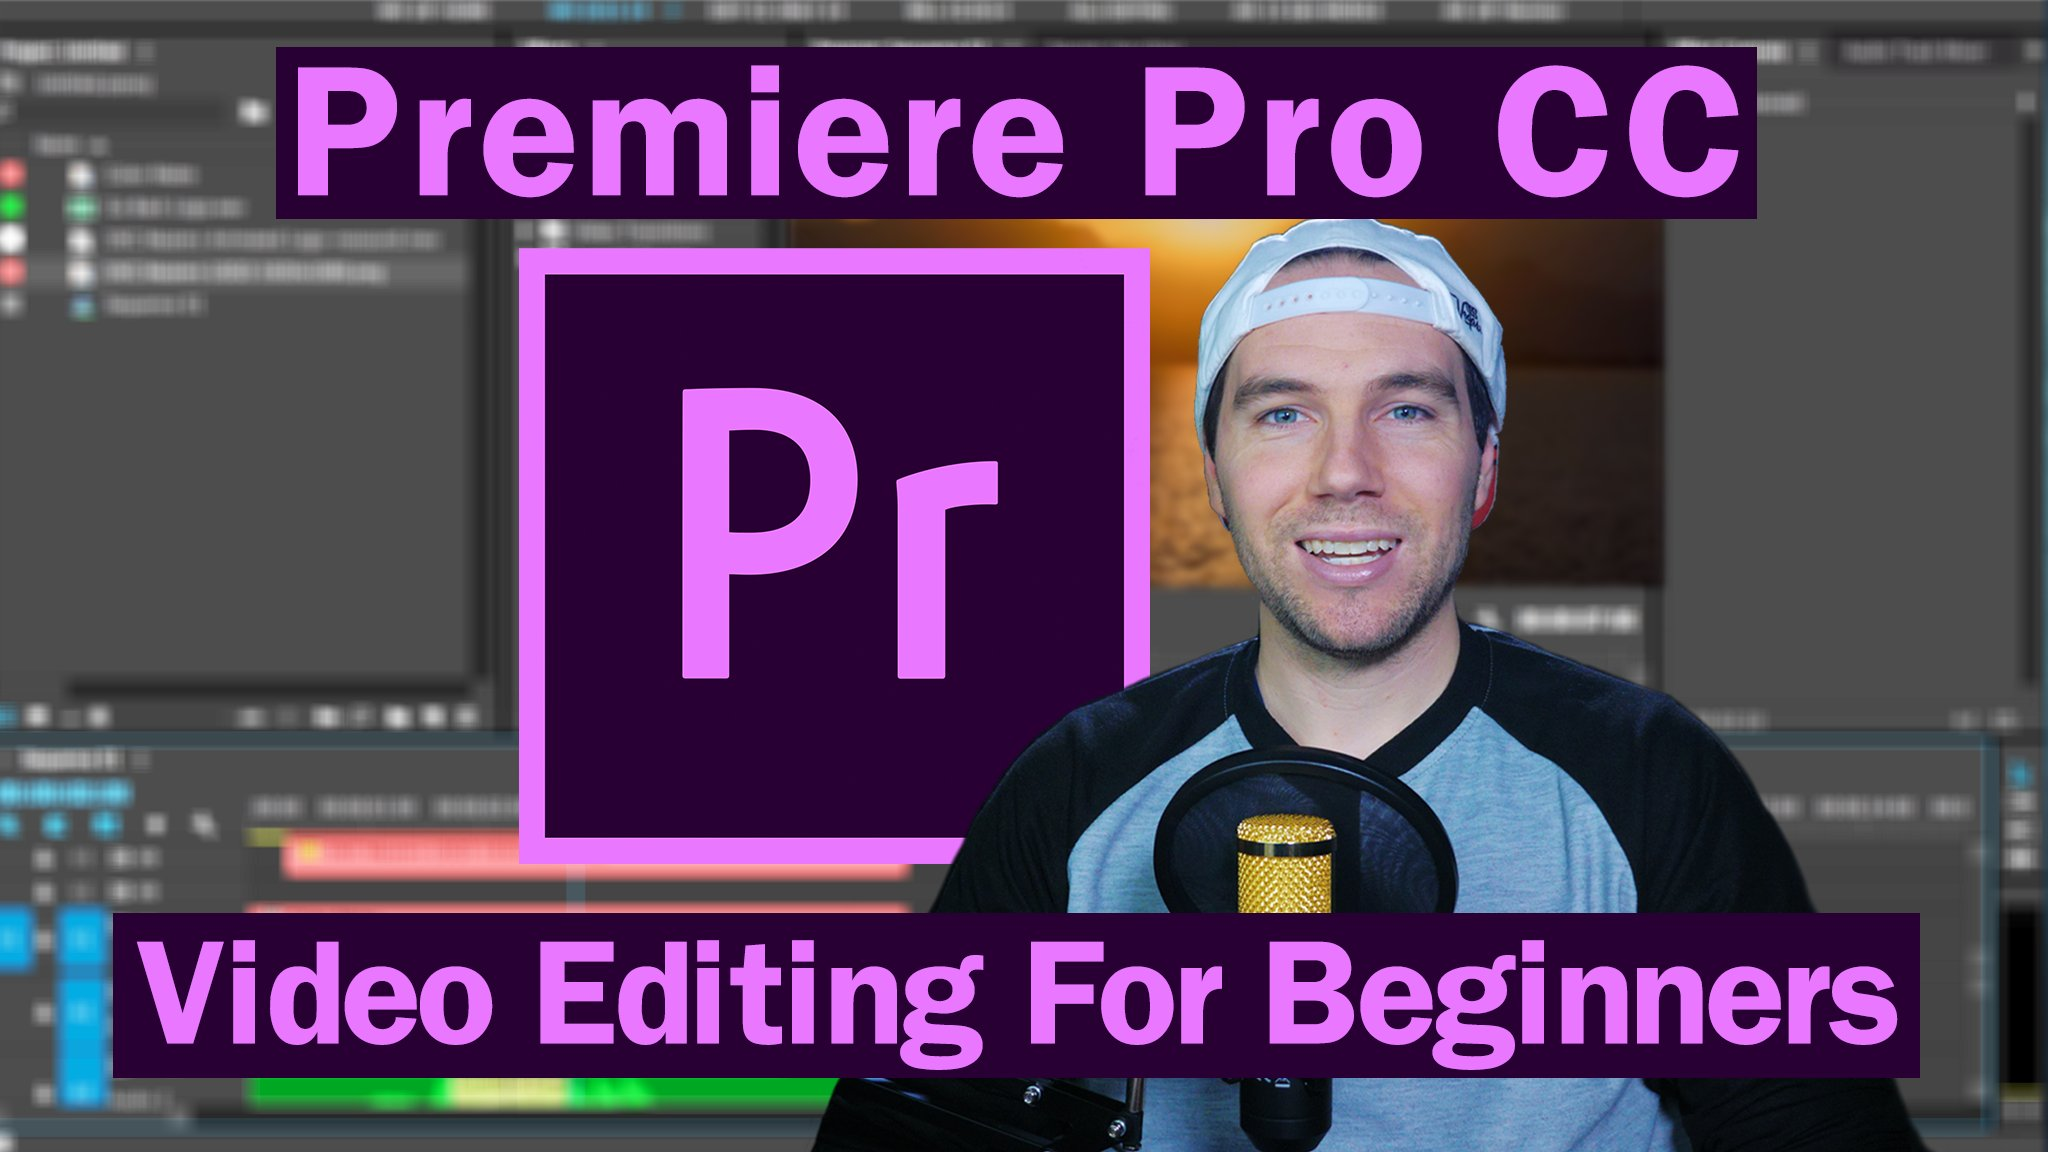 Adobe Premiere Pro CC For Beginners: Learn Video Editing In Premiere